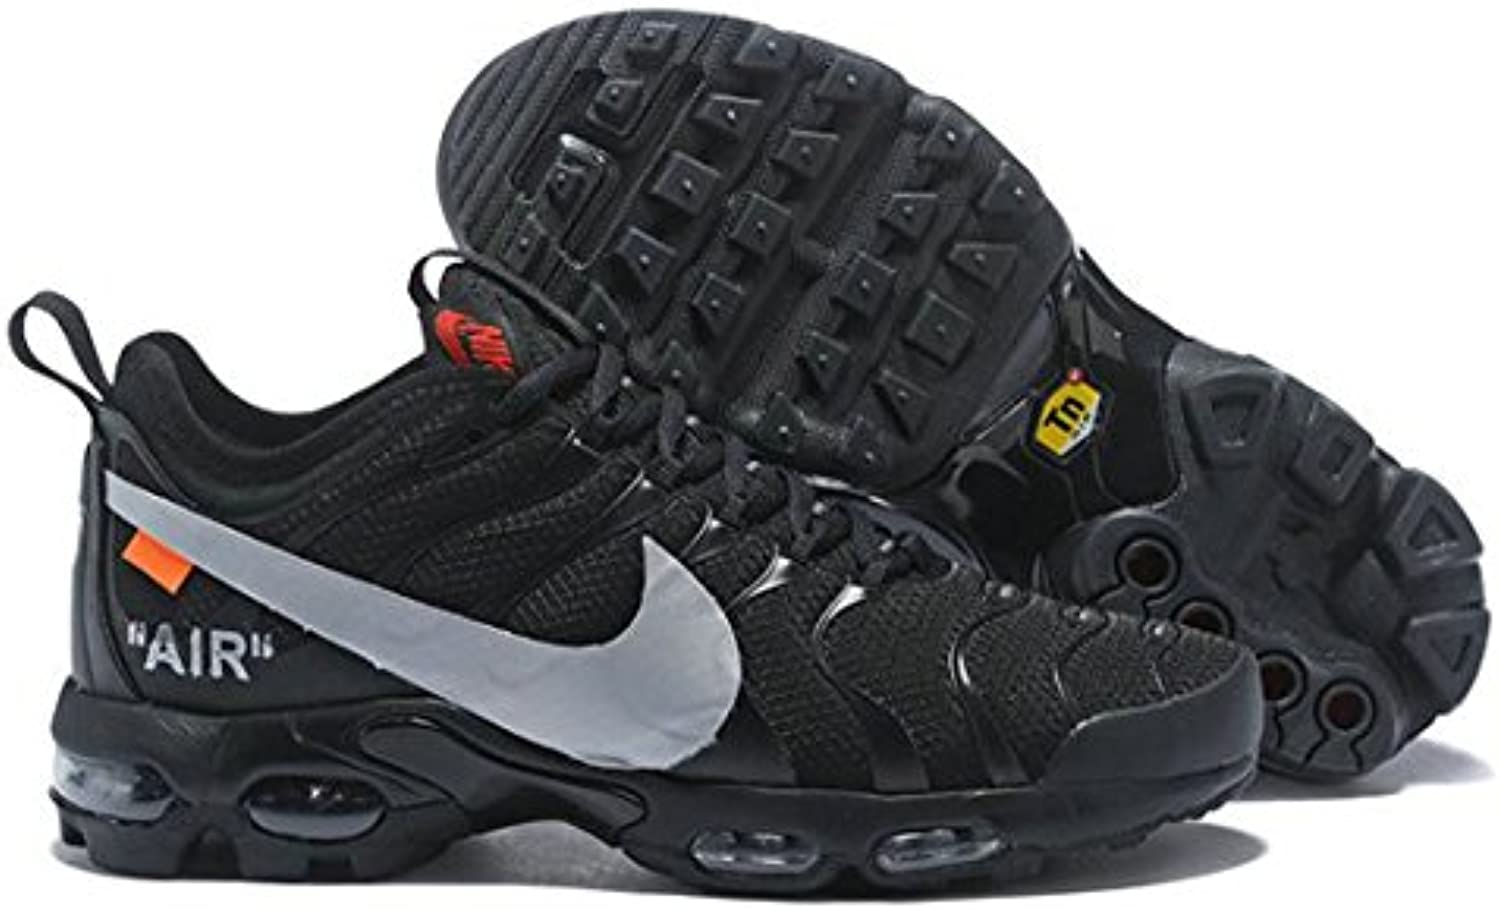 Off White X Air Max Plus TN Ultra Black Grey AJ0877 100 Herren Damen Gymnastikschuhe